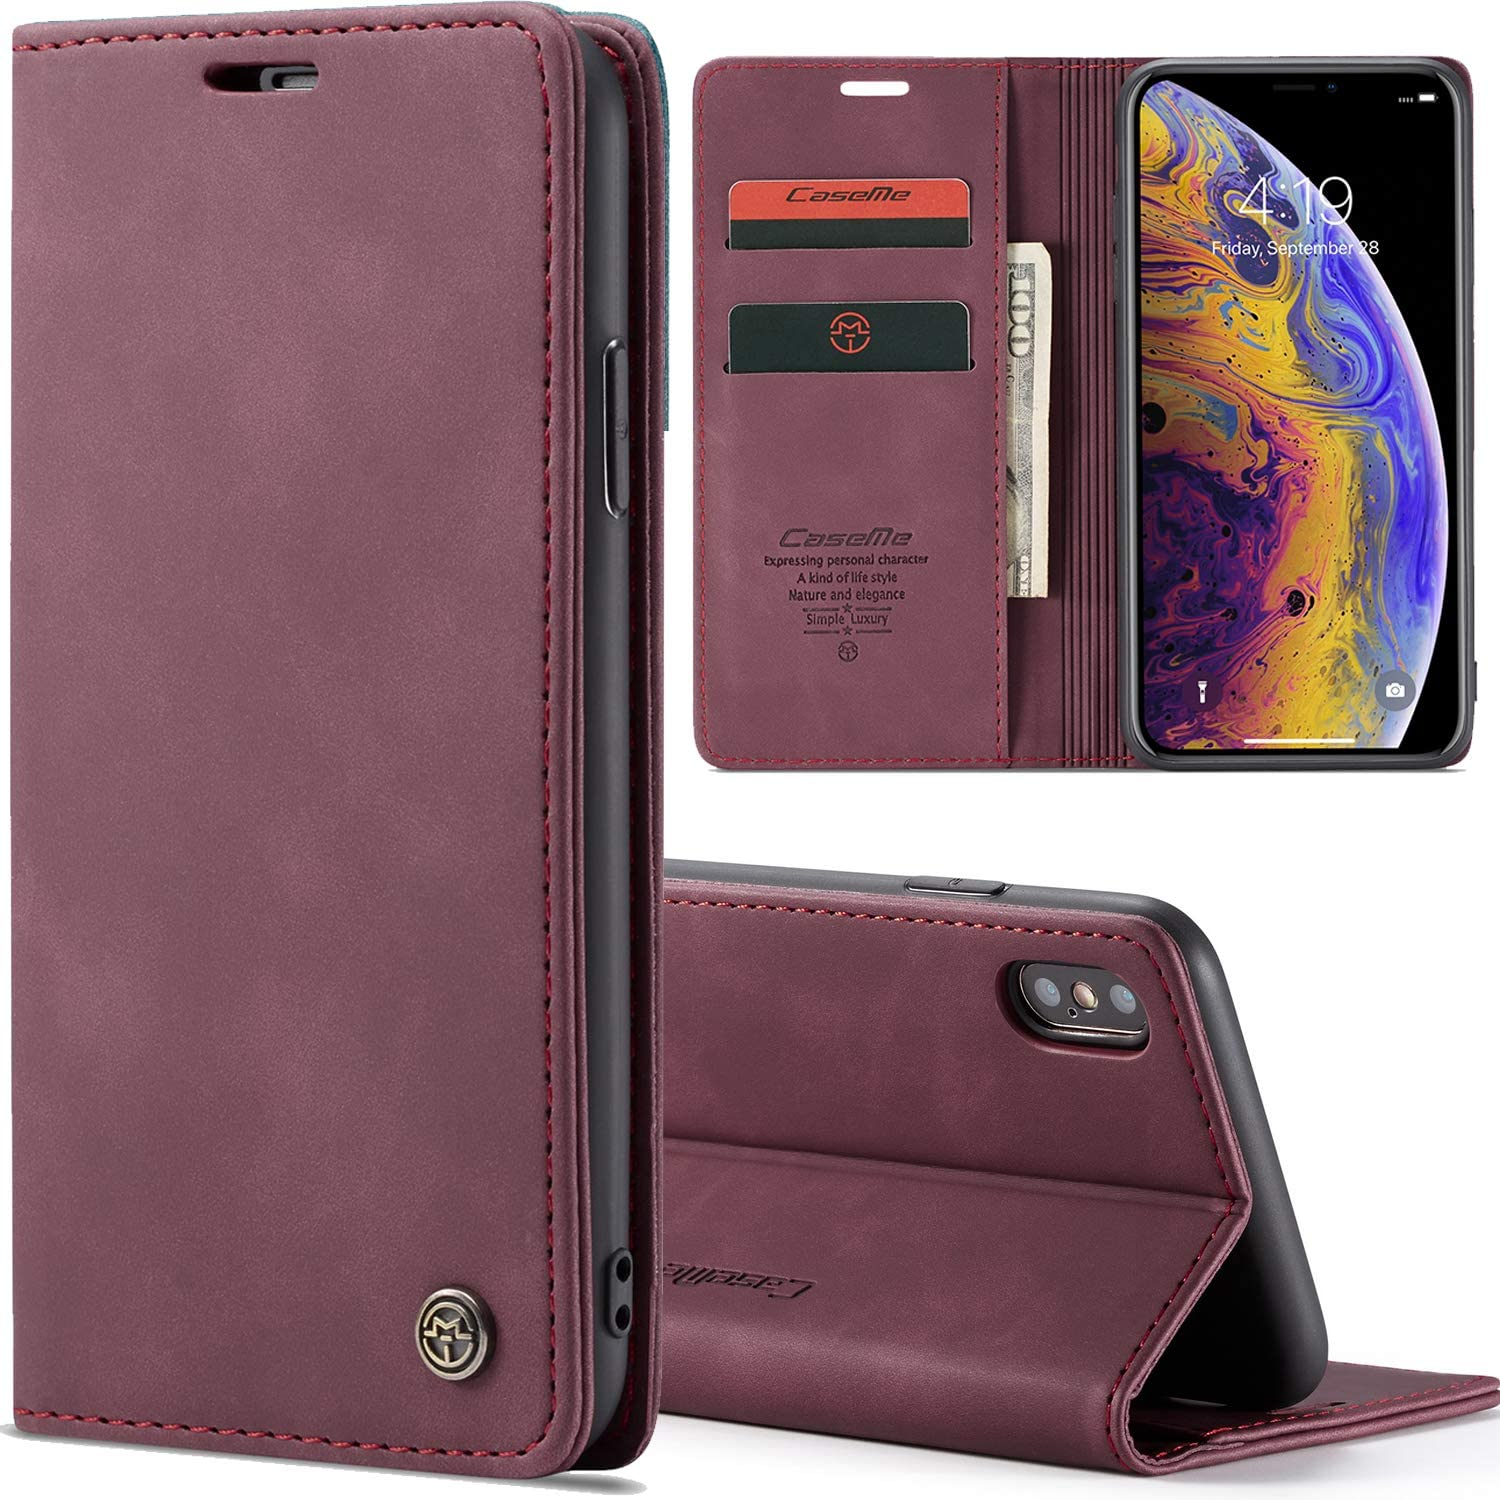 XRPow Slim Folio Leather Wallet Card Holder Case for iPhone 7 Plus/iPhone 8 Plus 5.5inch with Kickstand Magnetic Flip Potective Cover (Red)